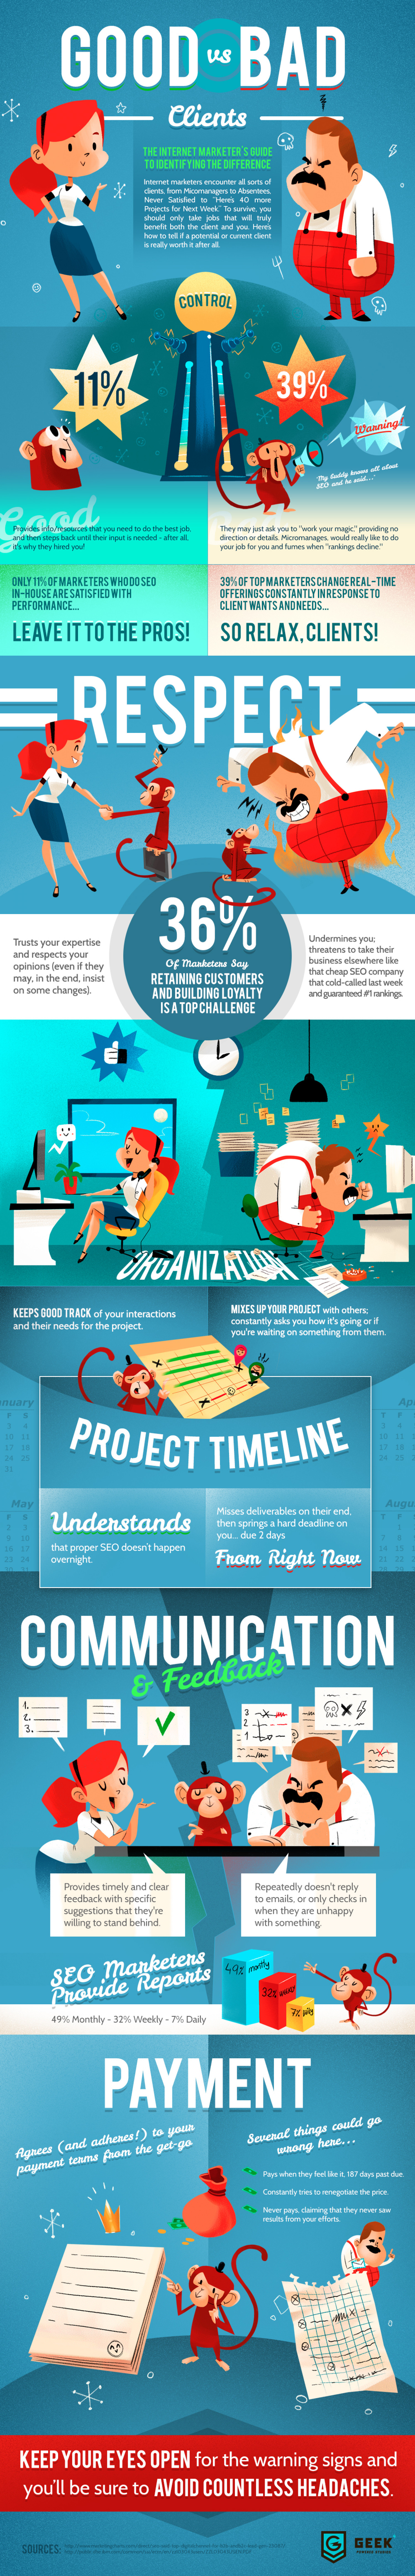 The Internet Marketer's Guide To Good VS. Bad Clients Infographic